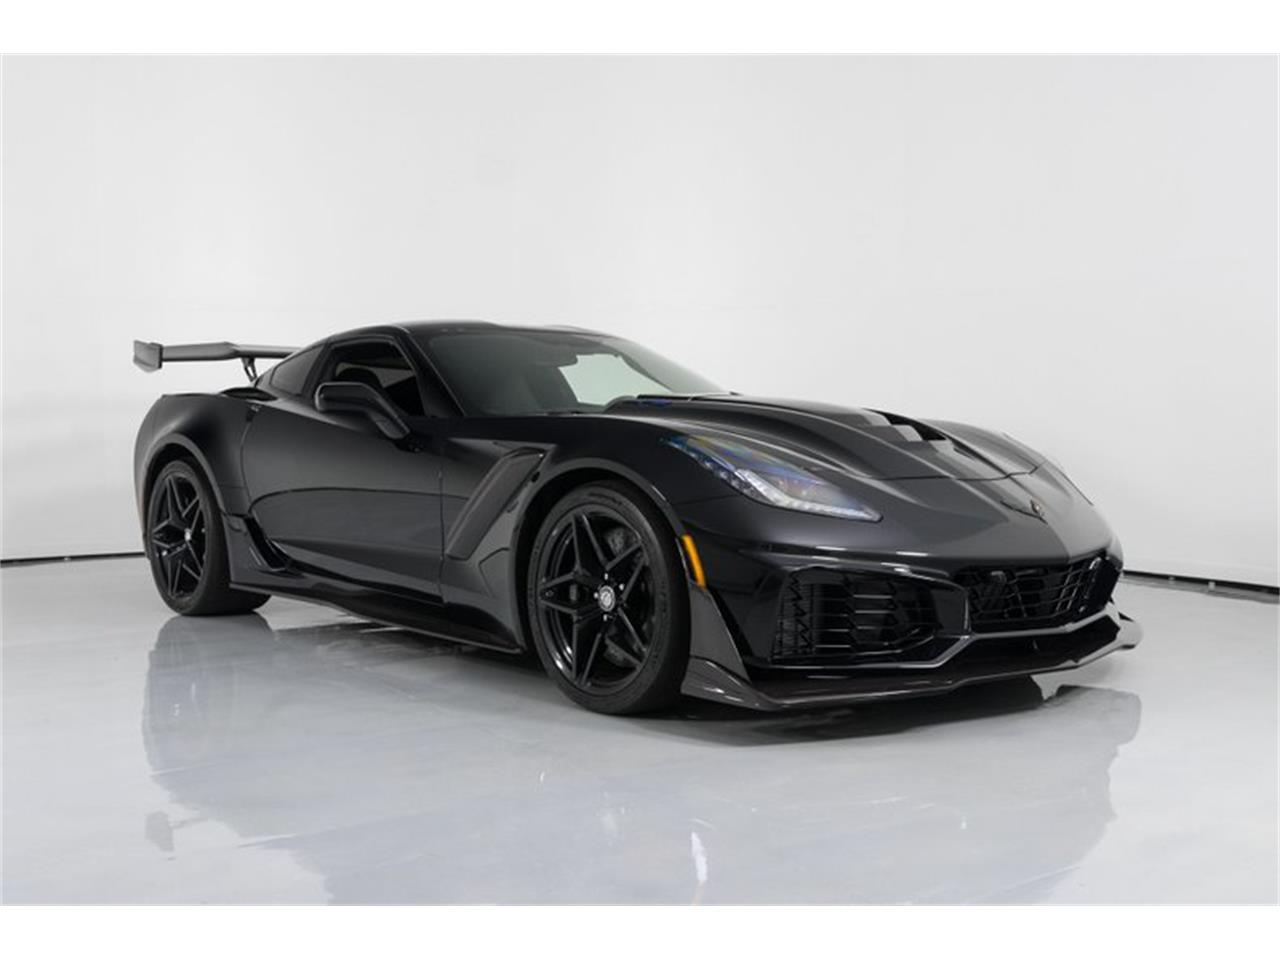 2019 Chevrolet Corvette ZR1 for sale in St. Charles, MO – photo 15